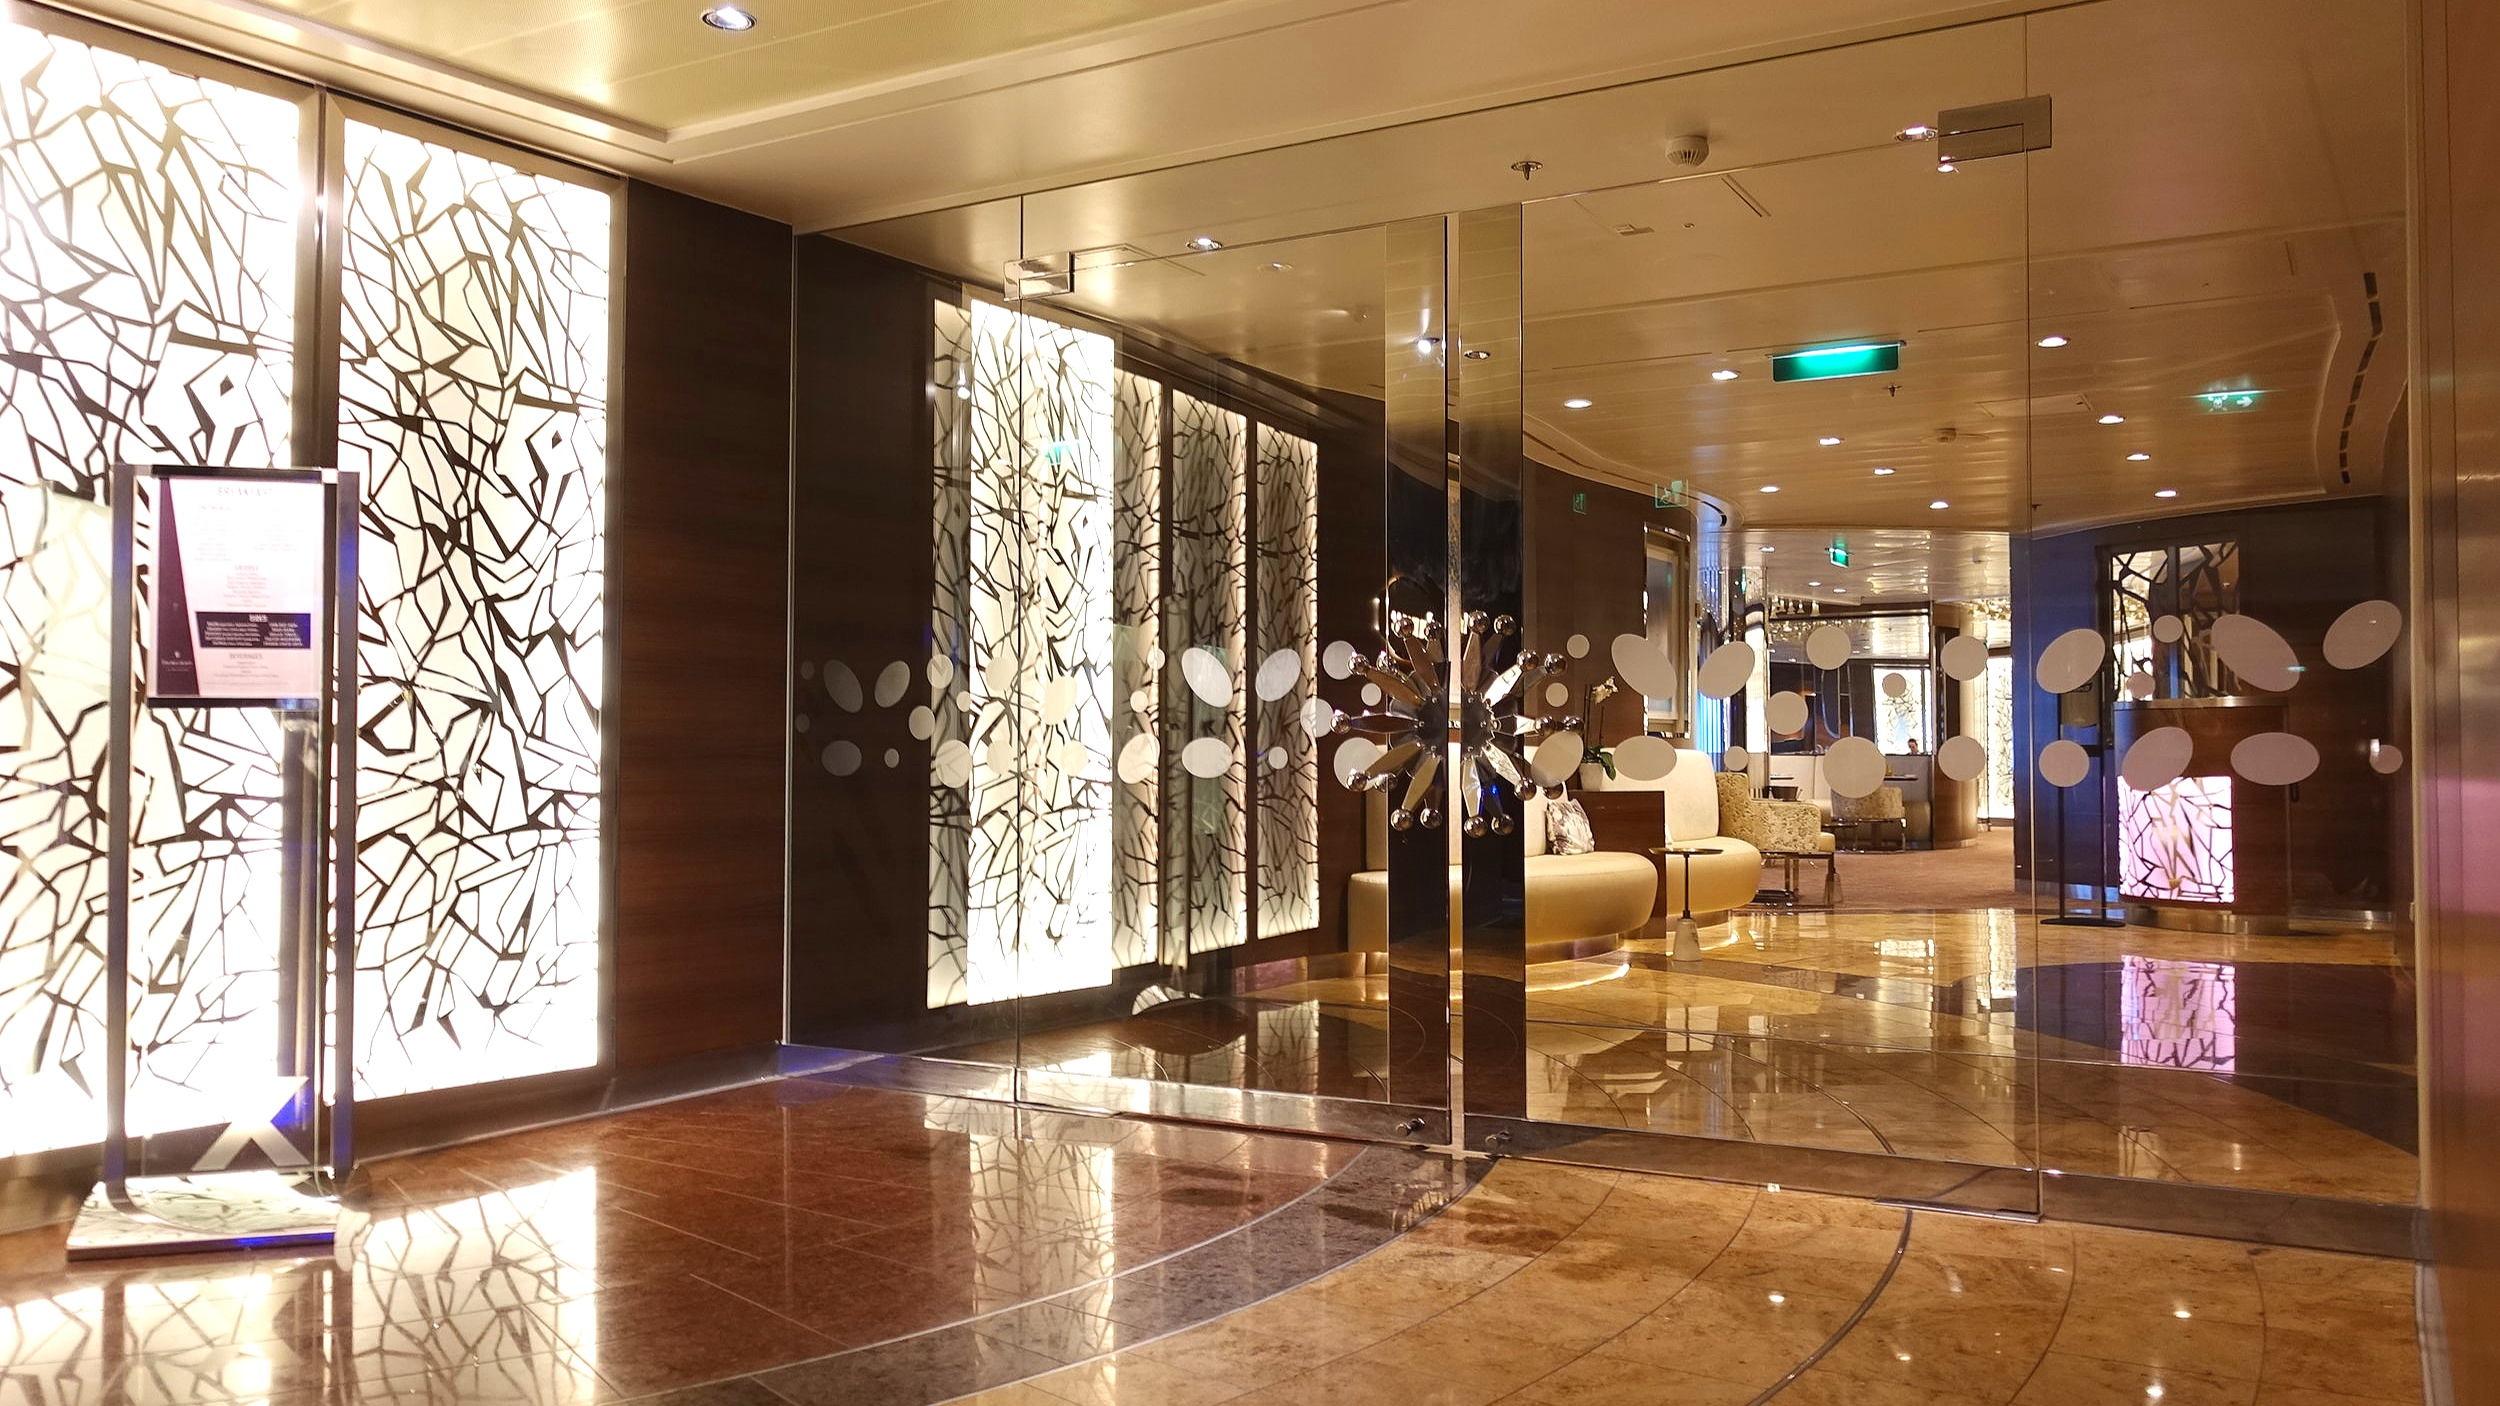 Beautiful glass double doors greet the suite guests